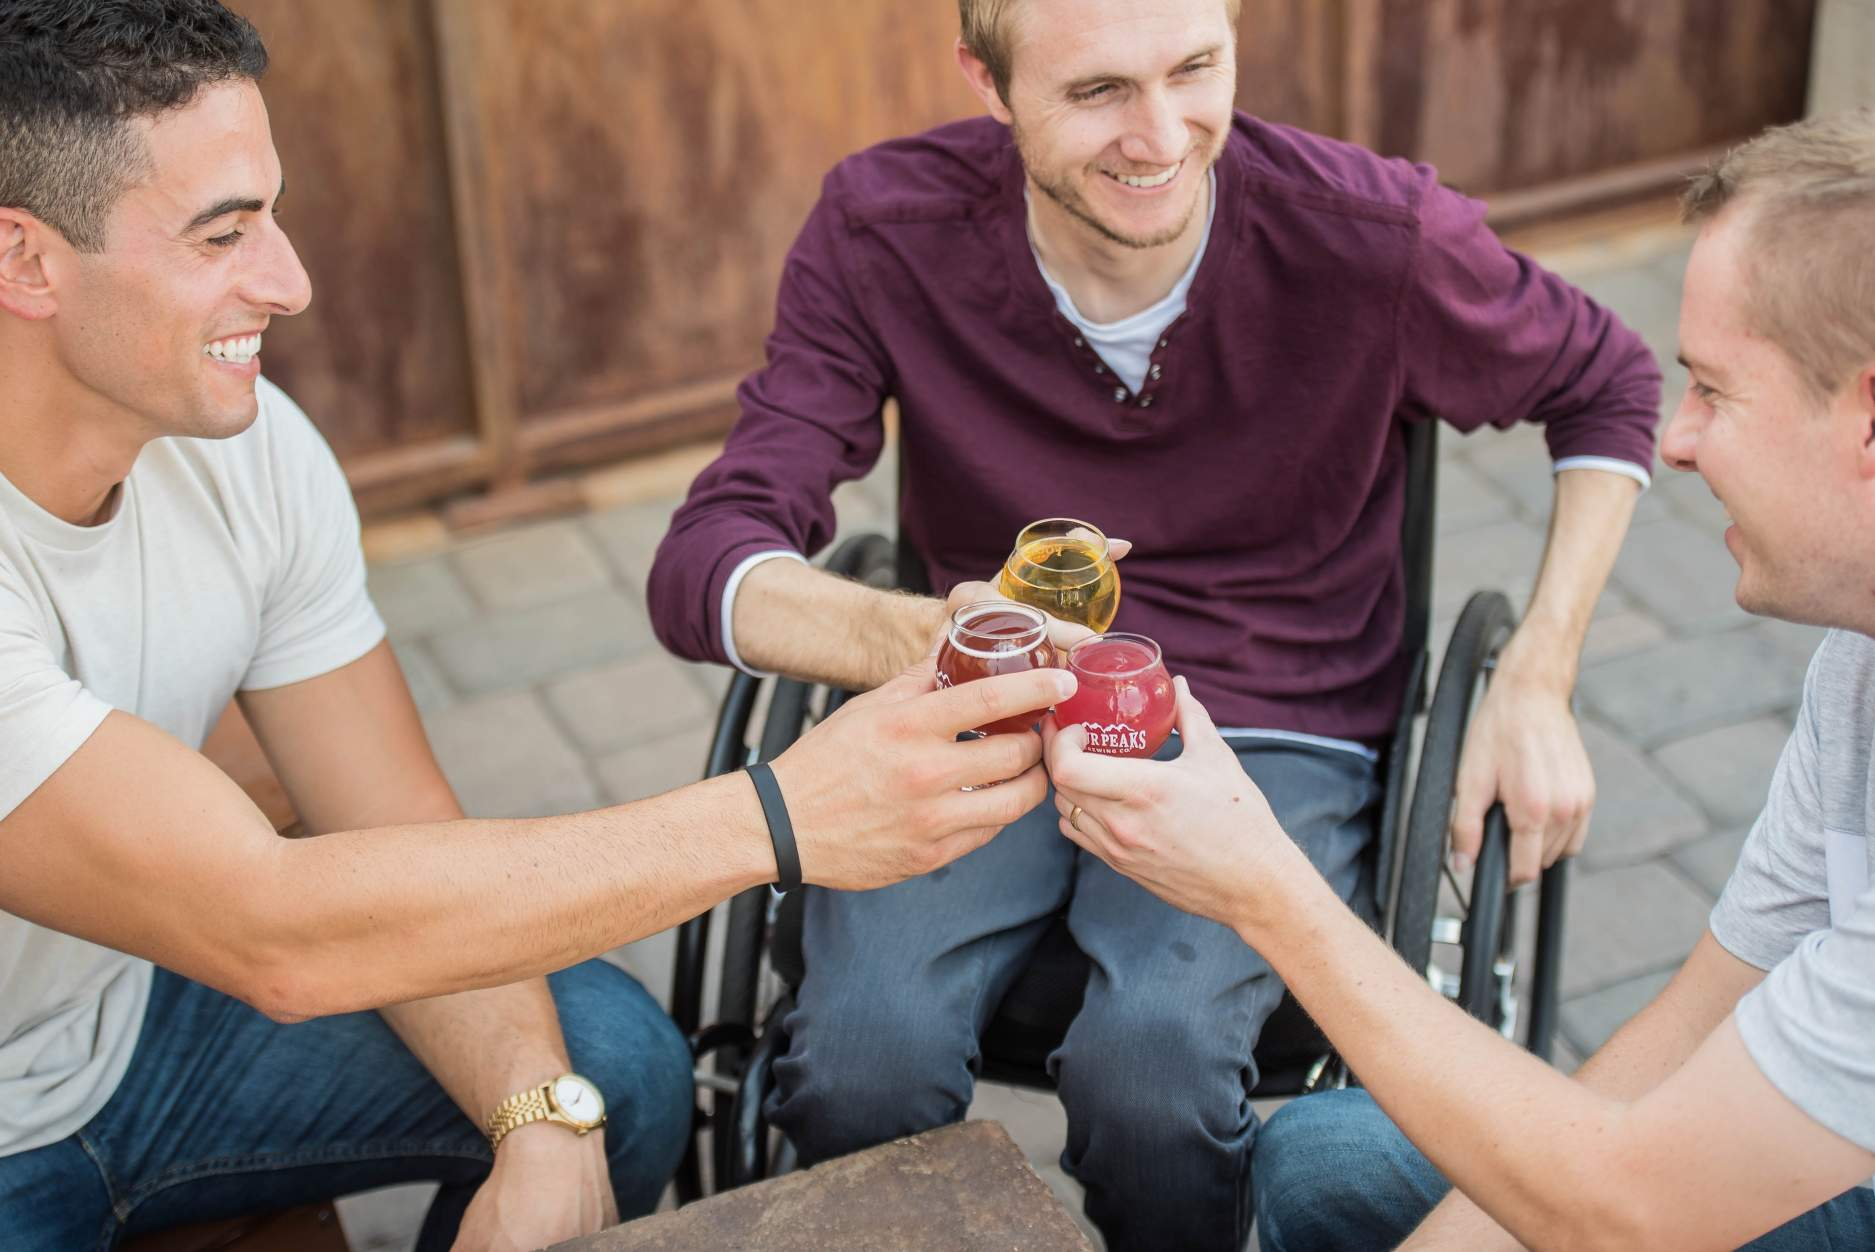 From Hiring to Culture: 3 Ways to Include Disabled Workers